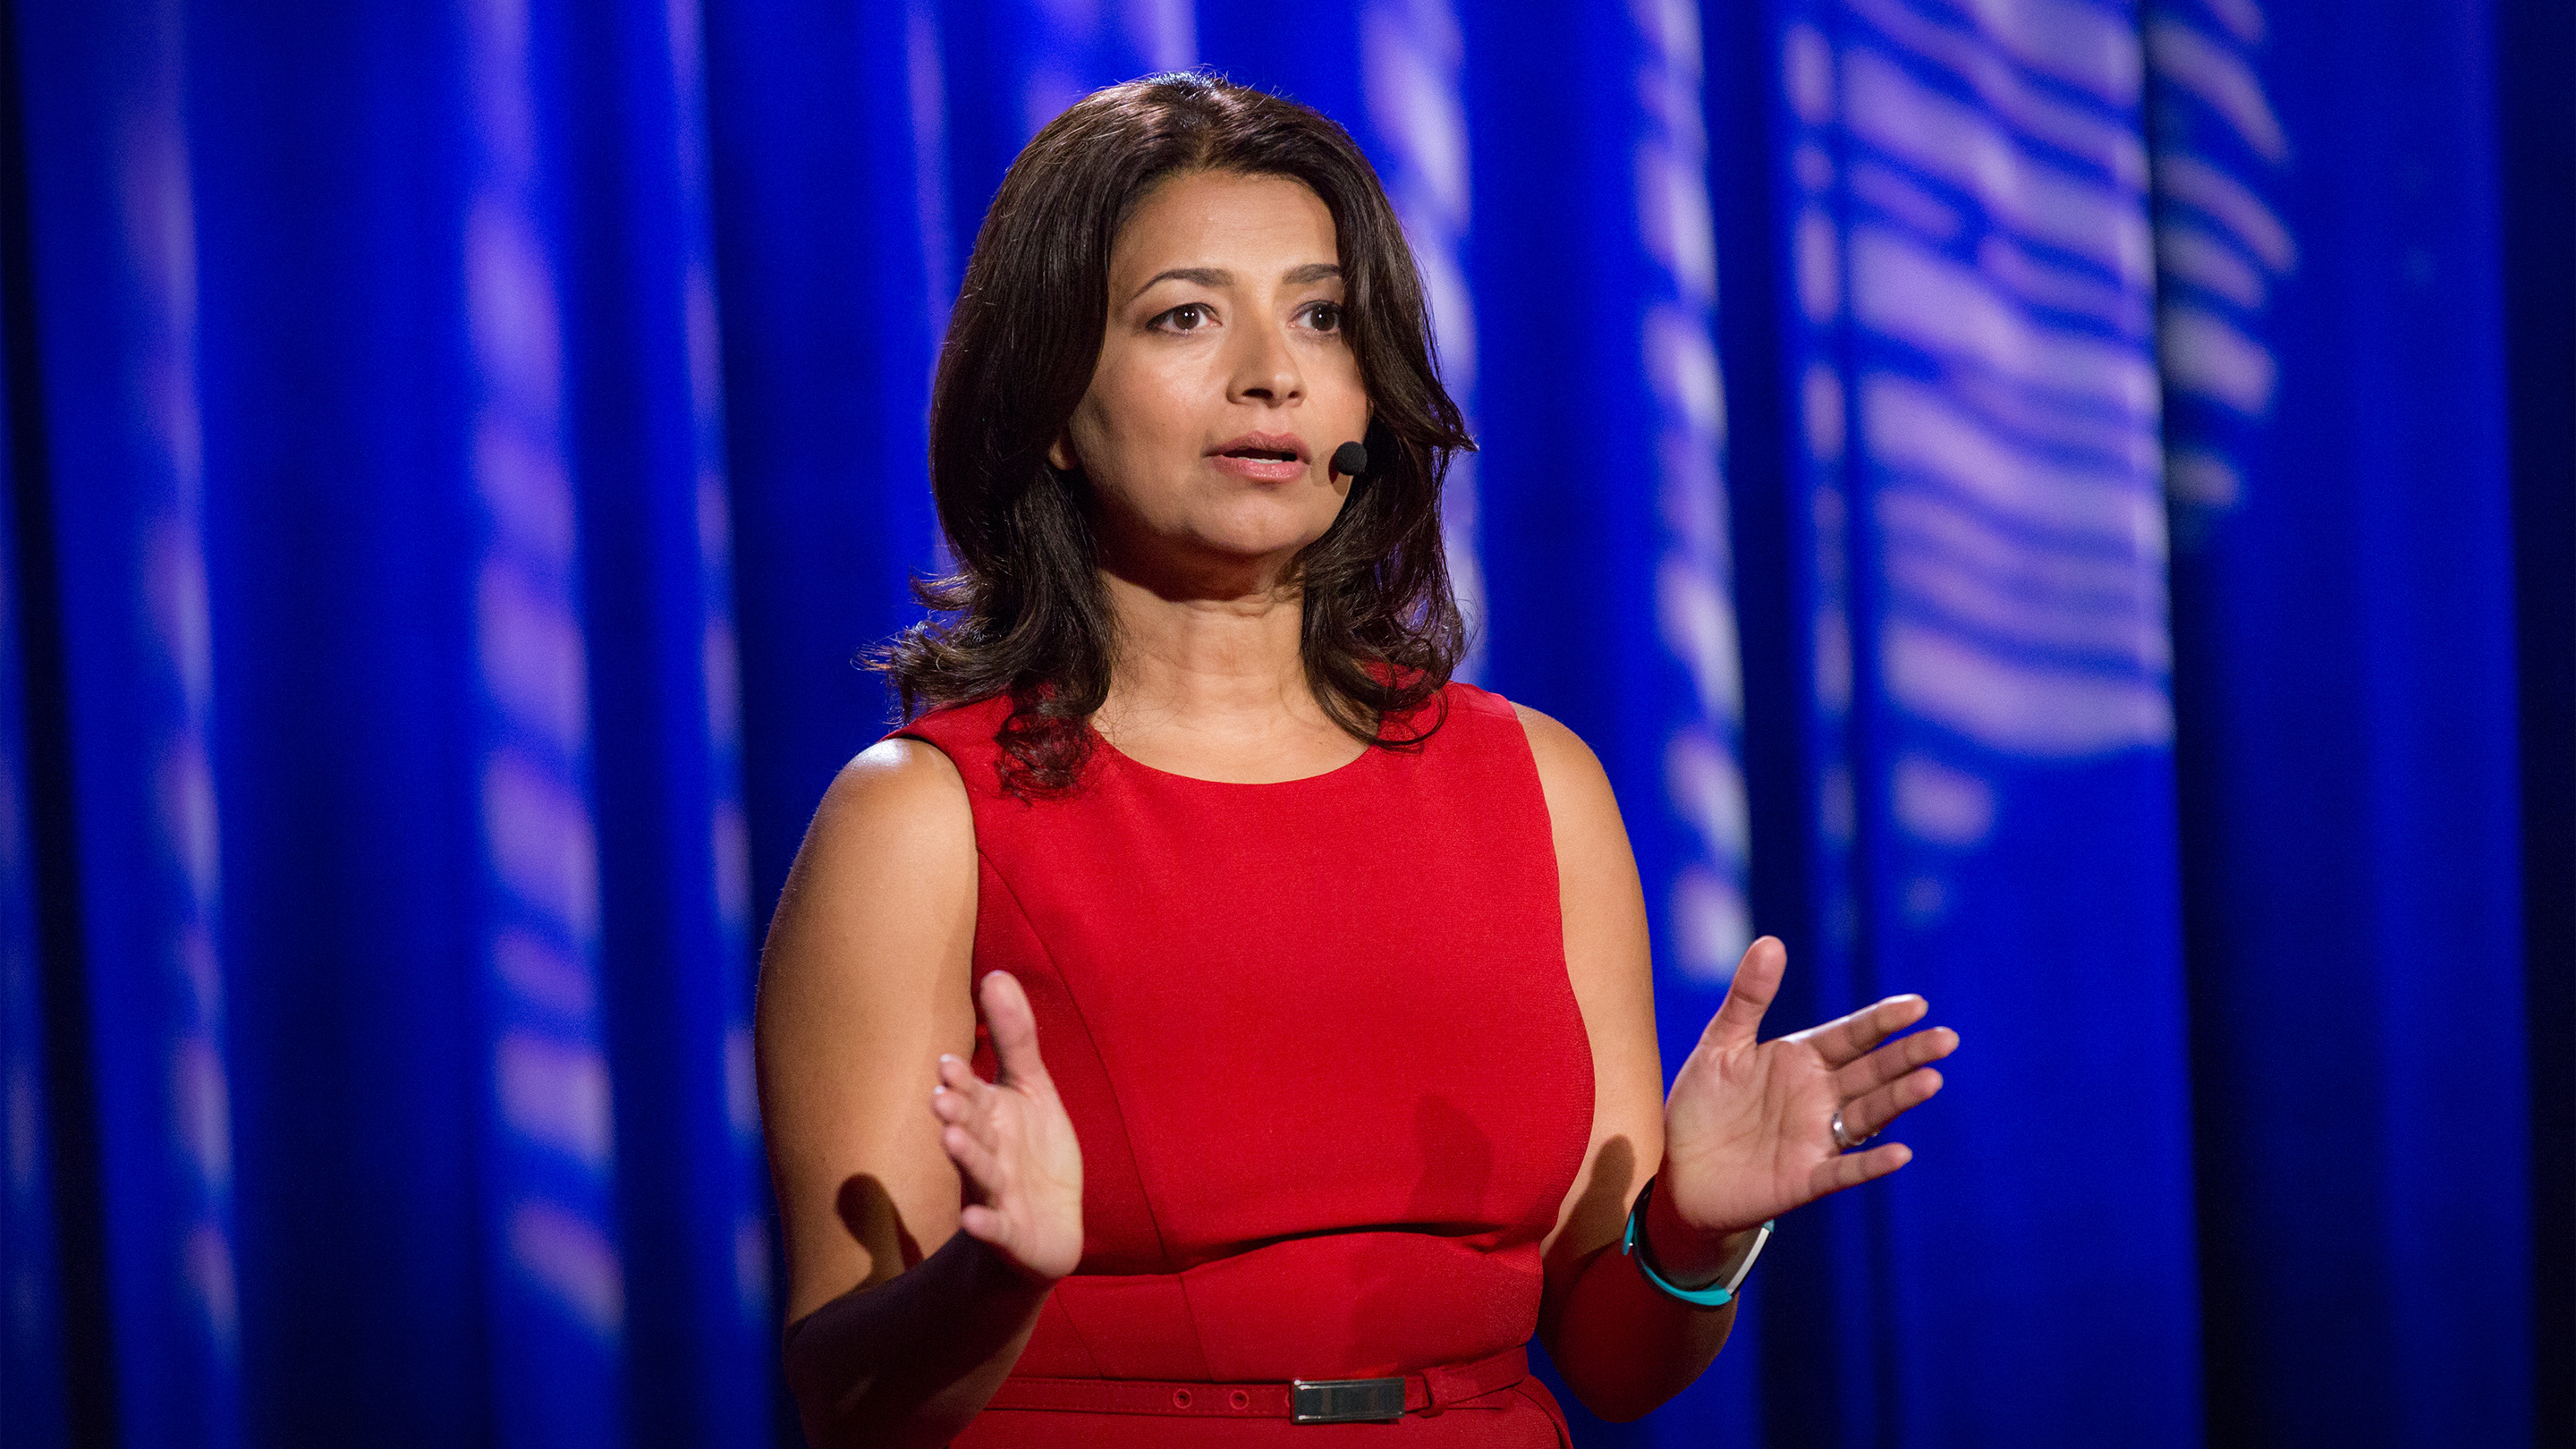 TED Talks: Immigrant voices make democracy stronger cover